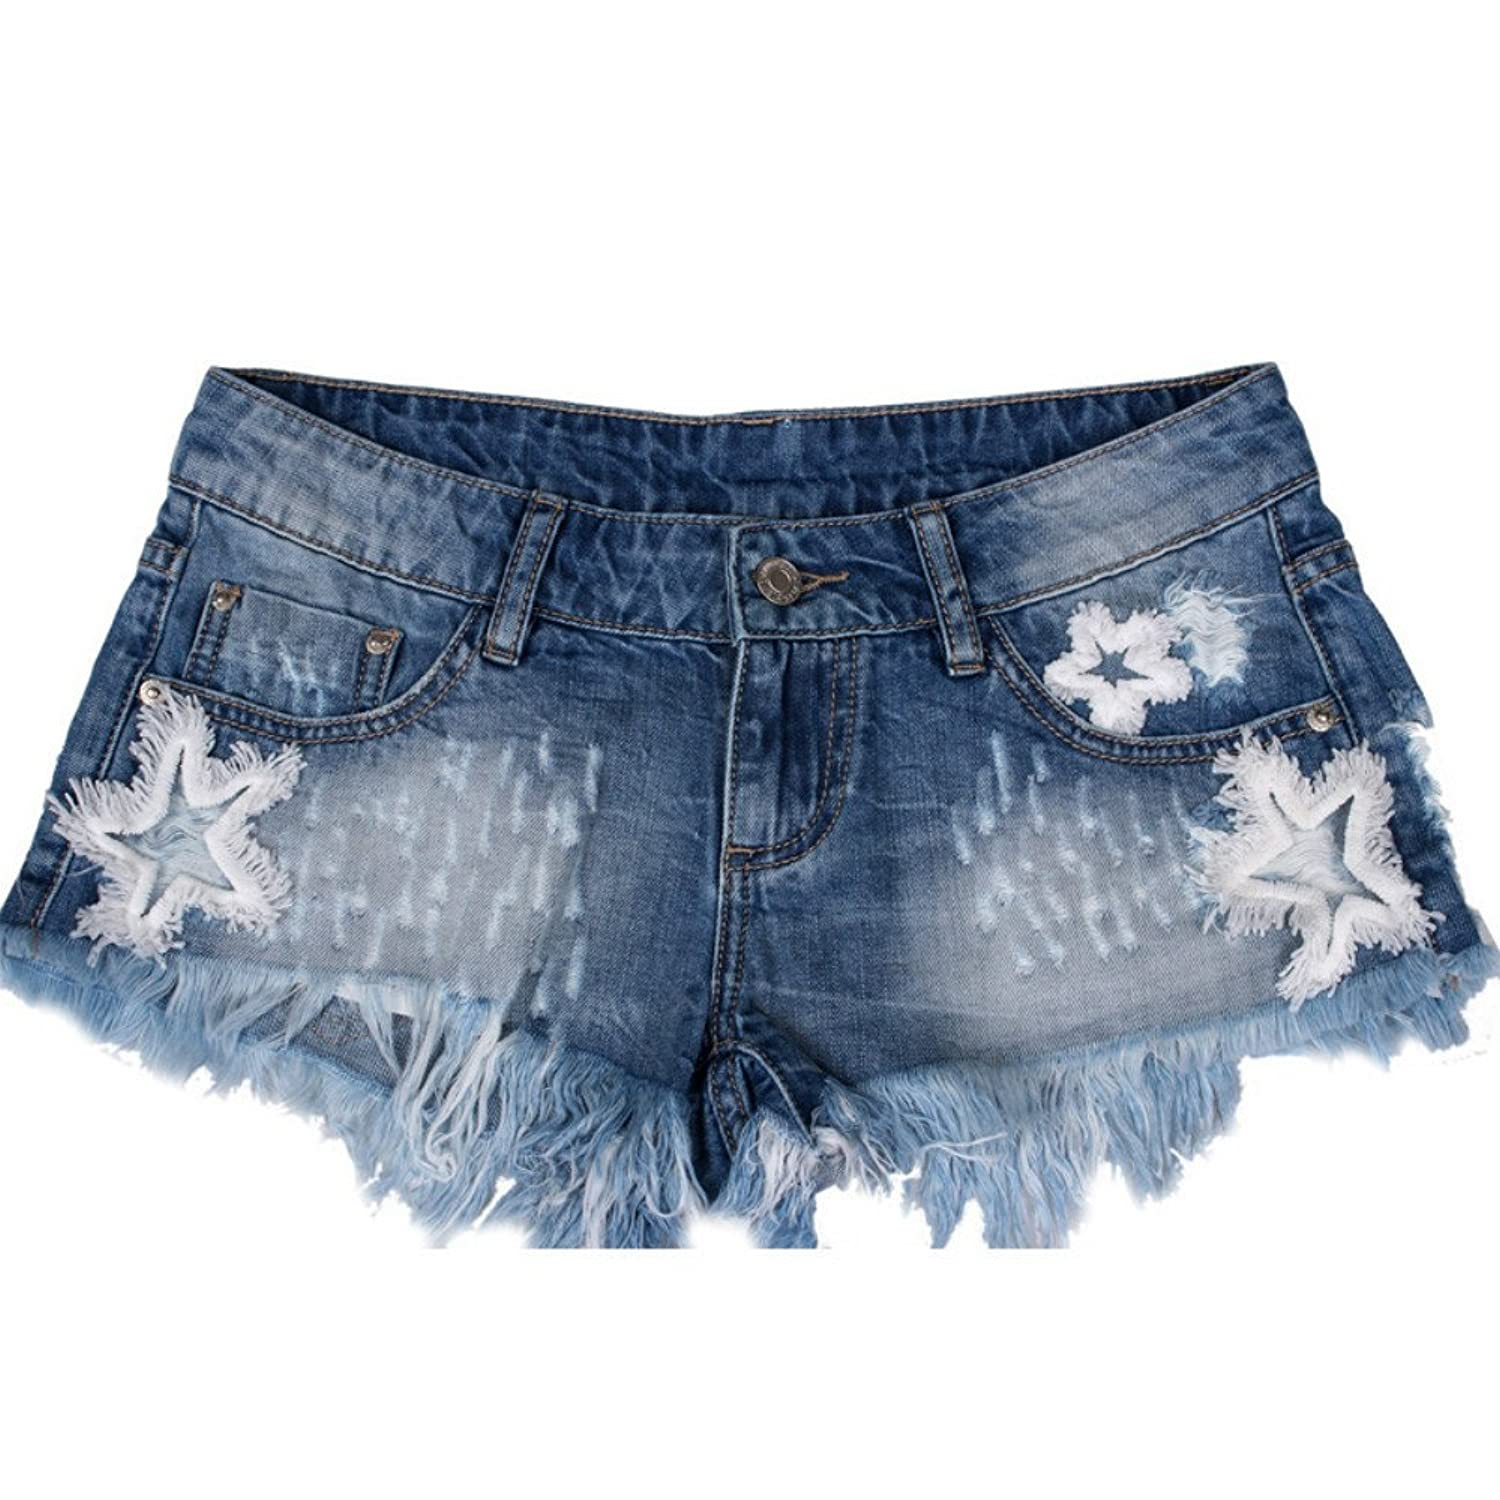 2017 Summer Fashion Star Patch Embroidered Women Denim Shorts Tassels Low Waist Skinny Sexy Jeans